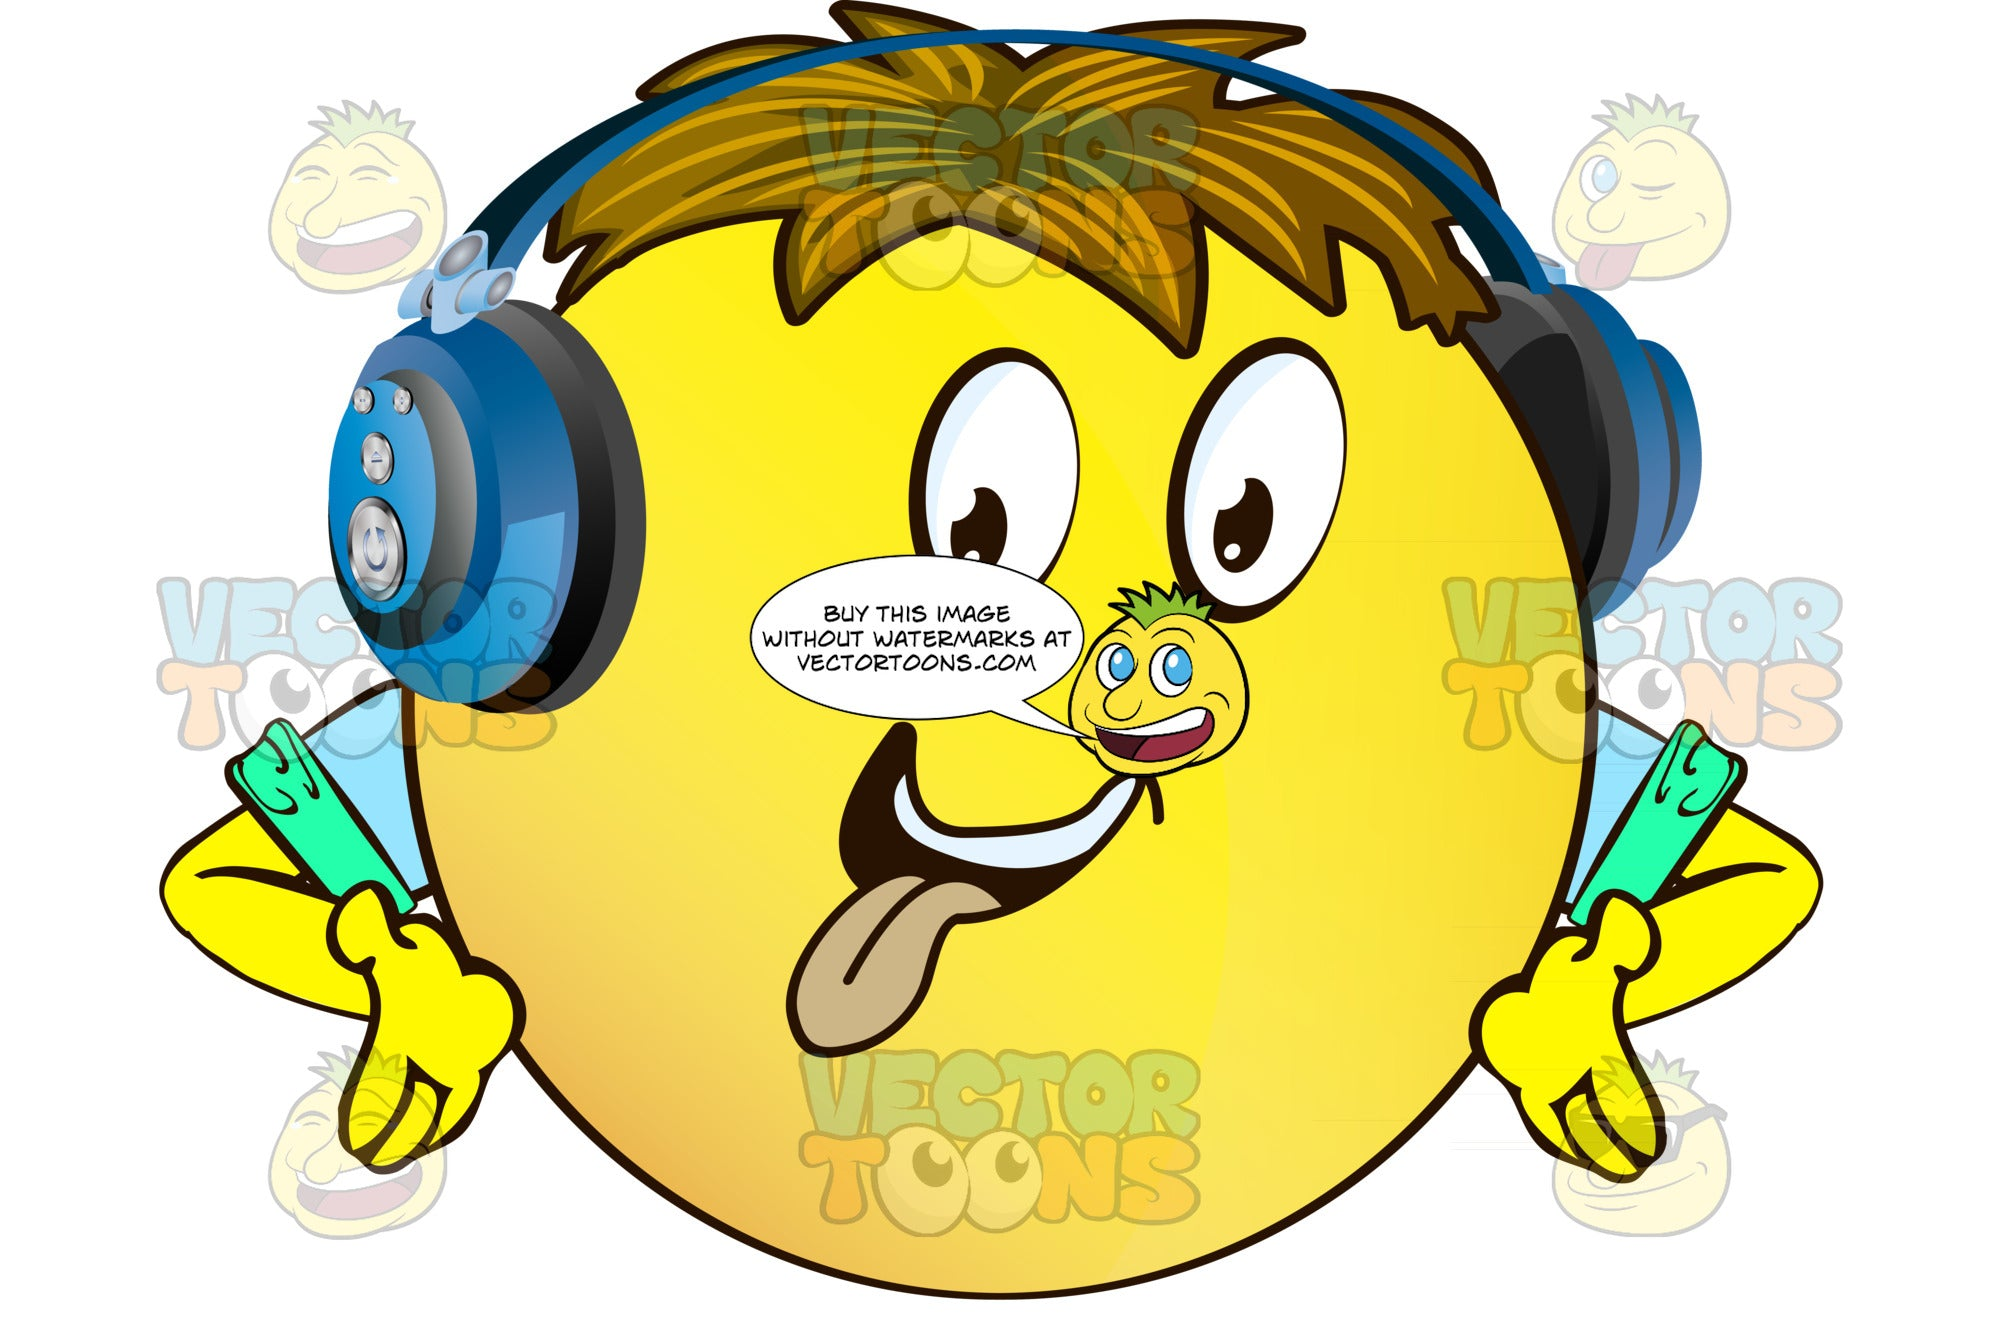 Tongue Out Yellow Smiley Face Emoticon With Arms, Brown Hair And Headphones Hands Upturned Arms Wearing Rolled Up Sleeves